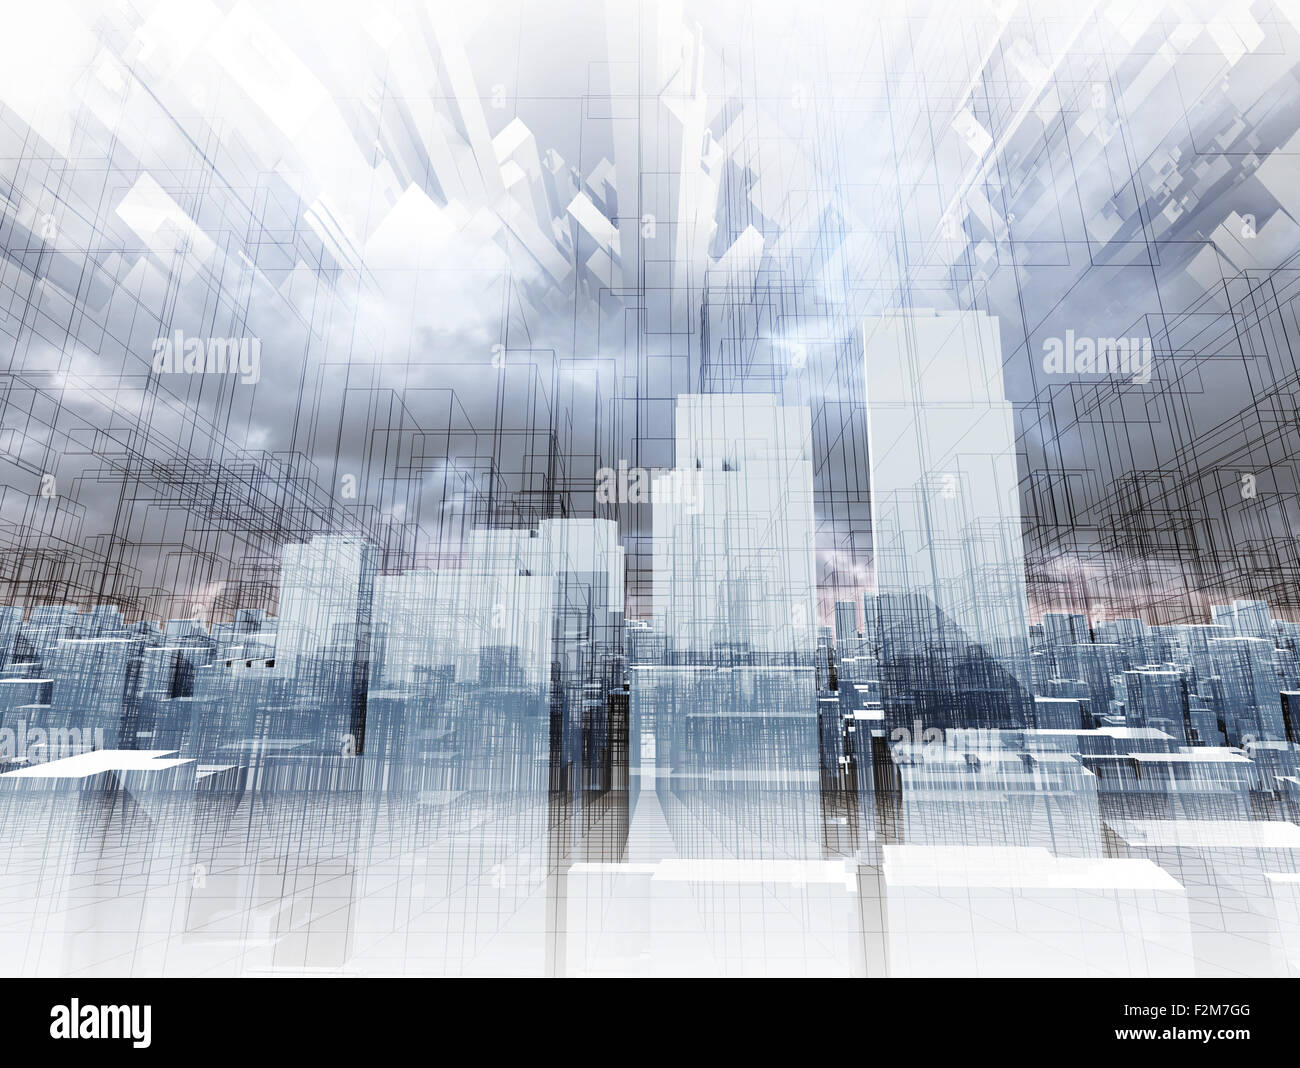 Abstract Futuristic 3d Cityscape Perspective Stockfotos & Abstract ...